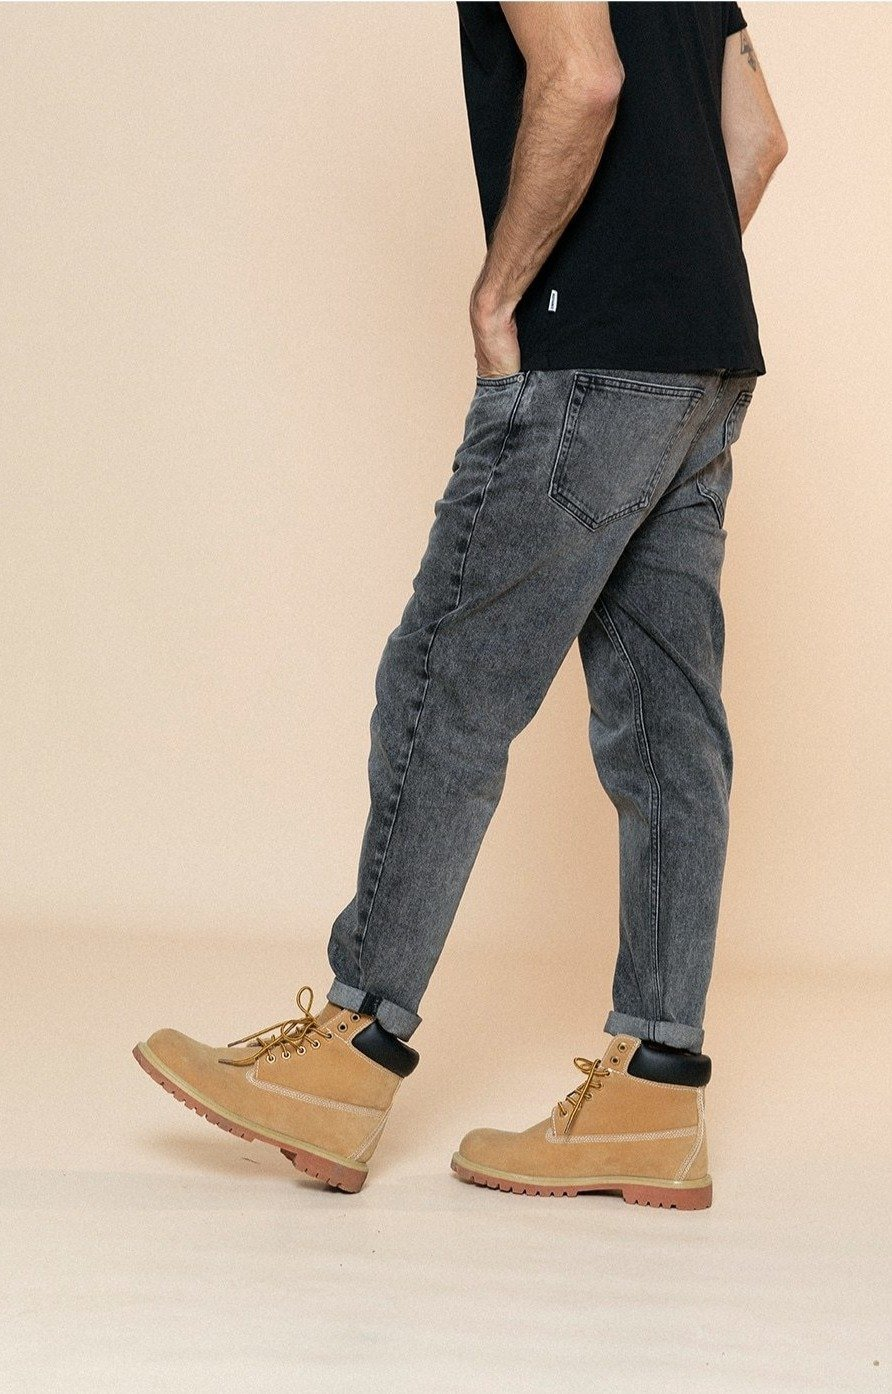 Comfortable Tapered Jeans Denim chrynne.com Men's Pants 58.99